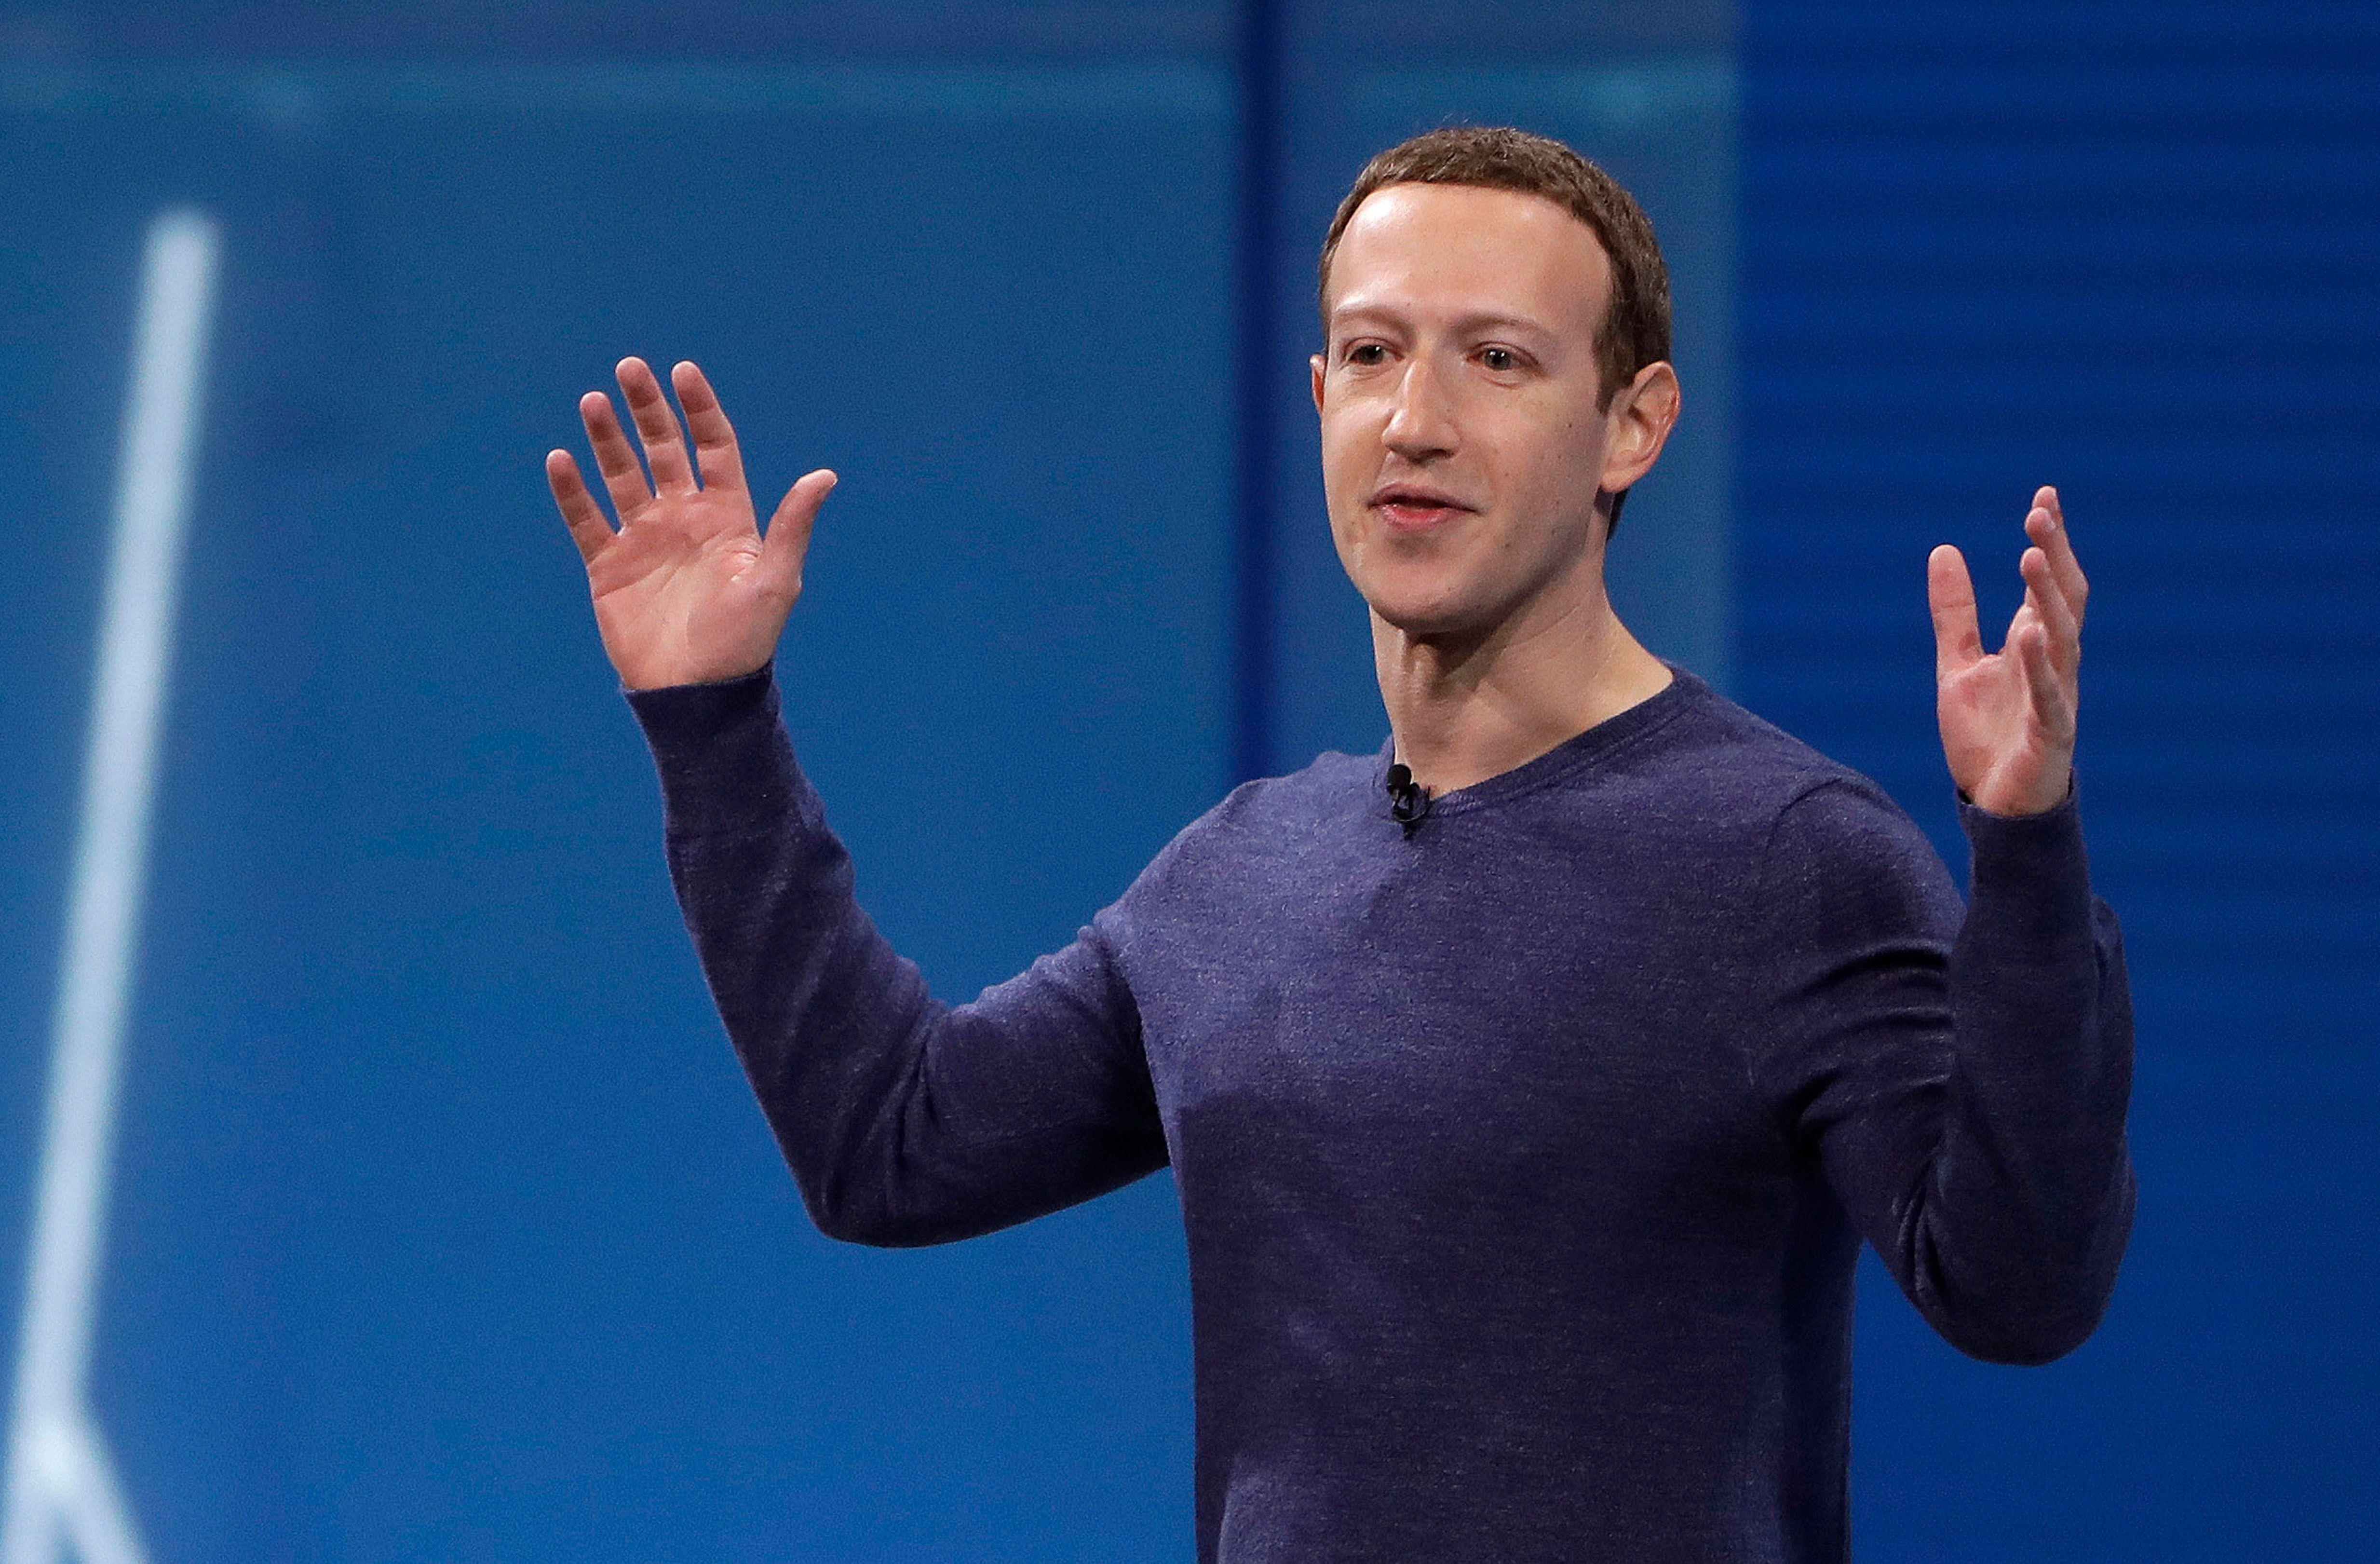 Facebook stock pops after Q1 earnings beat: Tech